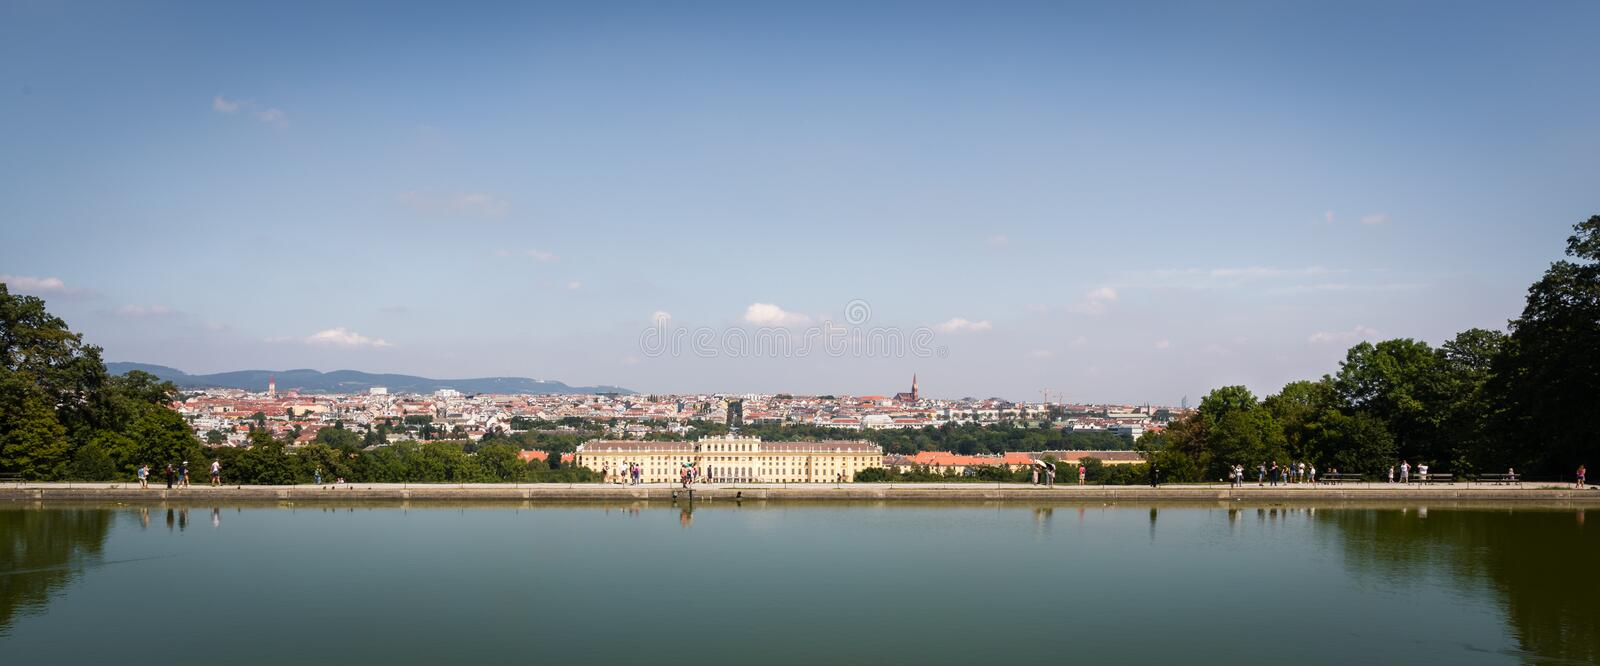 Schonbrunn palace and city of vienna viewed from the pond on the hill. A historic and heritage site in Vienna with the Baroque garden royalty free stock photography